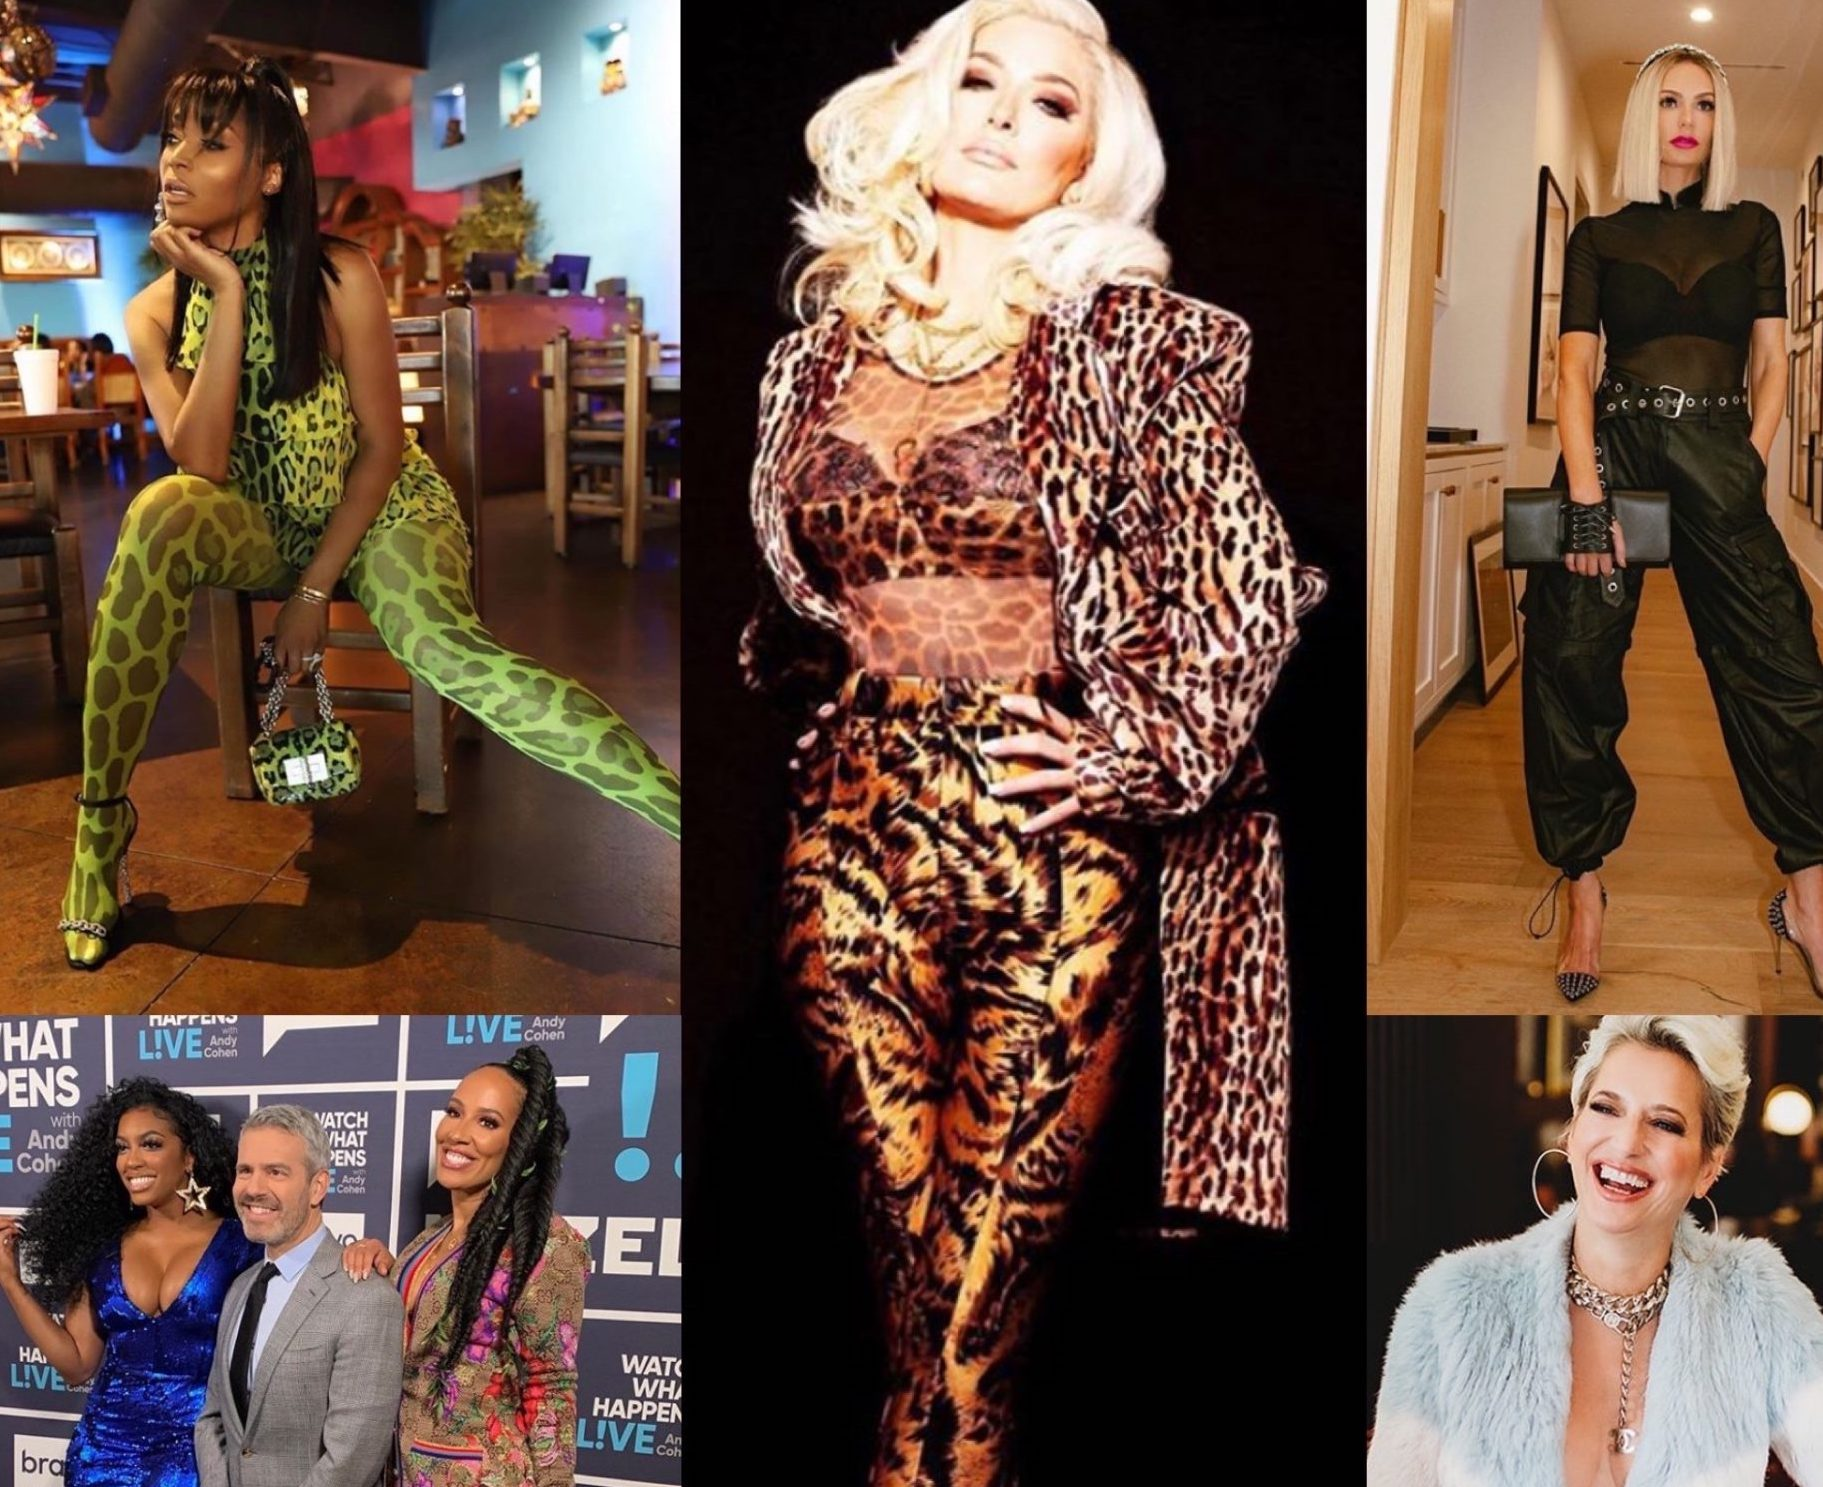 Who Is The Best Dressed Real Housewife Dorit Kemsley Marlo Hampton Tanya Sam Erika Jayne And More Fashion Bomb Daily Style Magazine Celebrity Fashion Fashion News What To Wear Runway Show